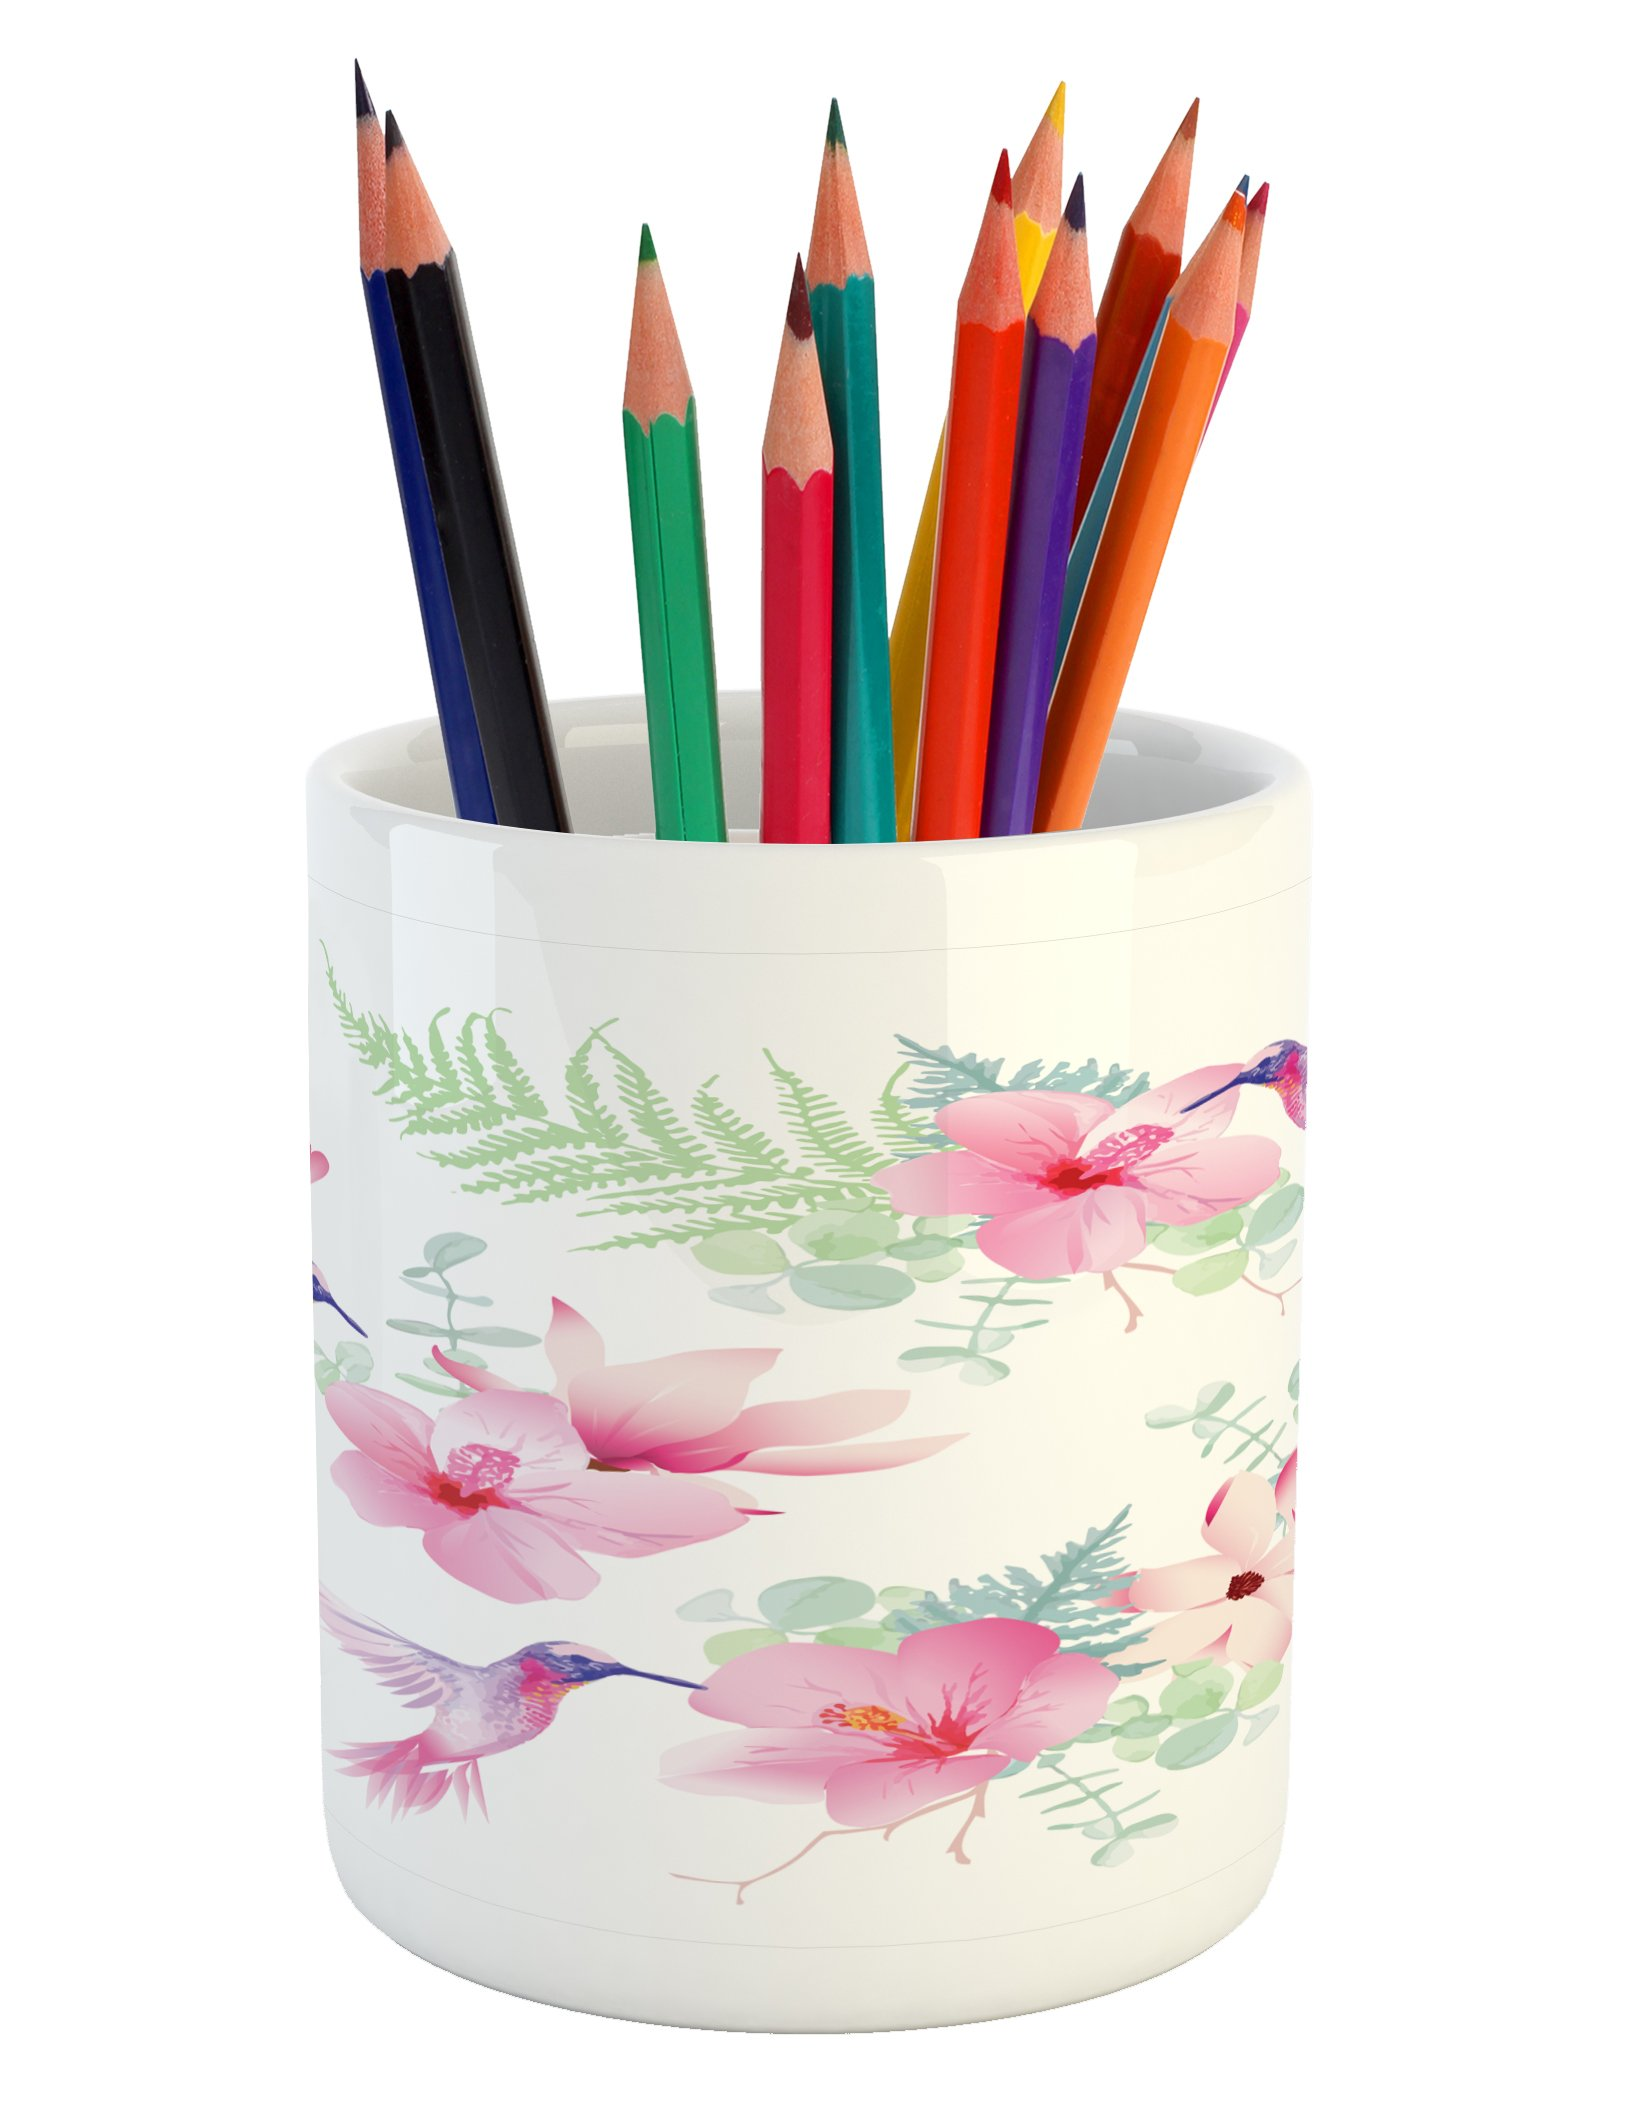 Ambesonne Hummingbirds Pencil Pen Holder, Tropical Flowers with Flying Hummingbirds Wild Nature Blooms, Printed Ceramic Pencil Pen Holder for Desk Office Accessory, Pale Pink Pale Green Purple